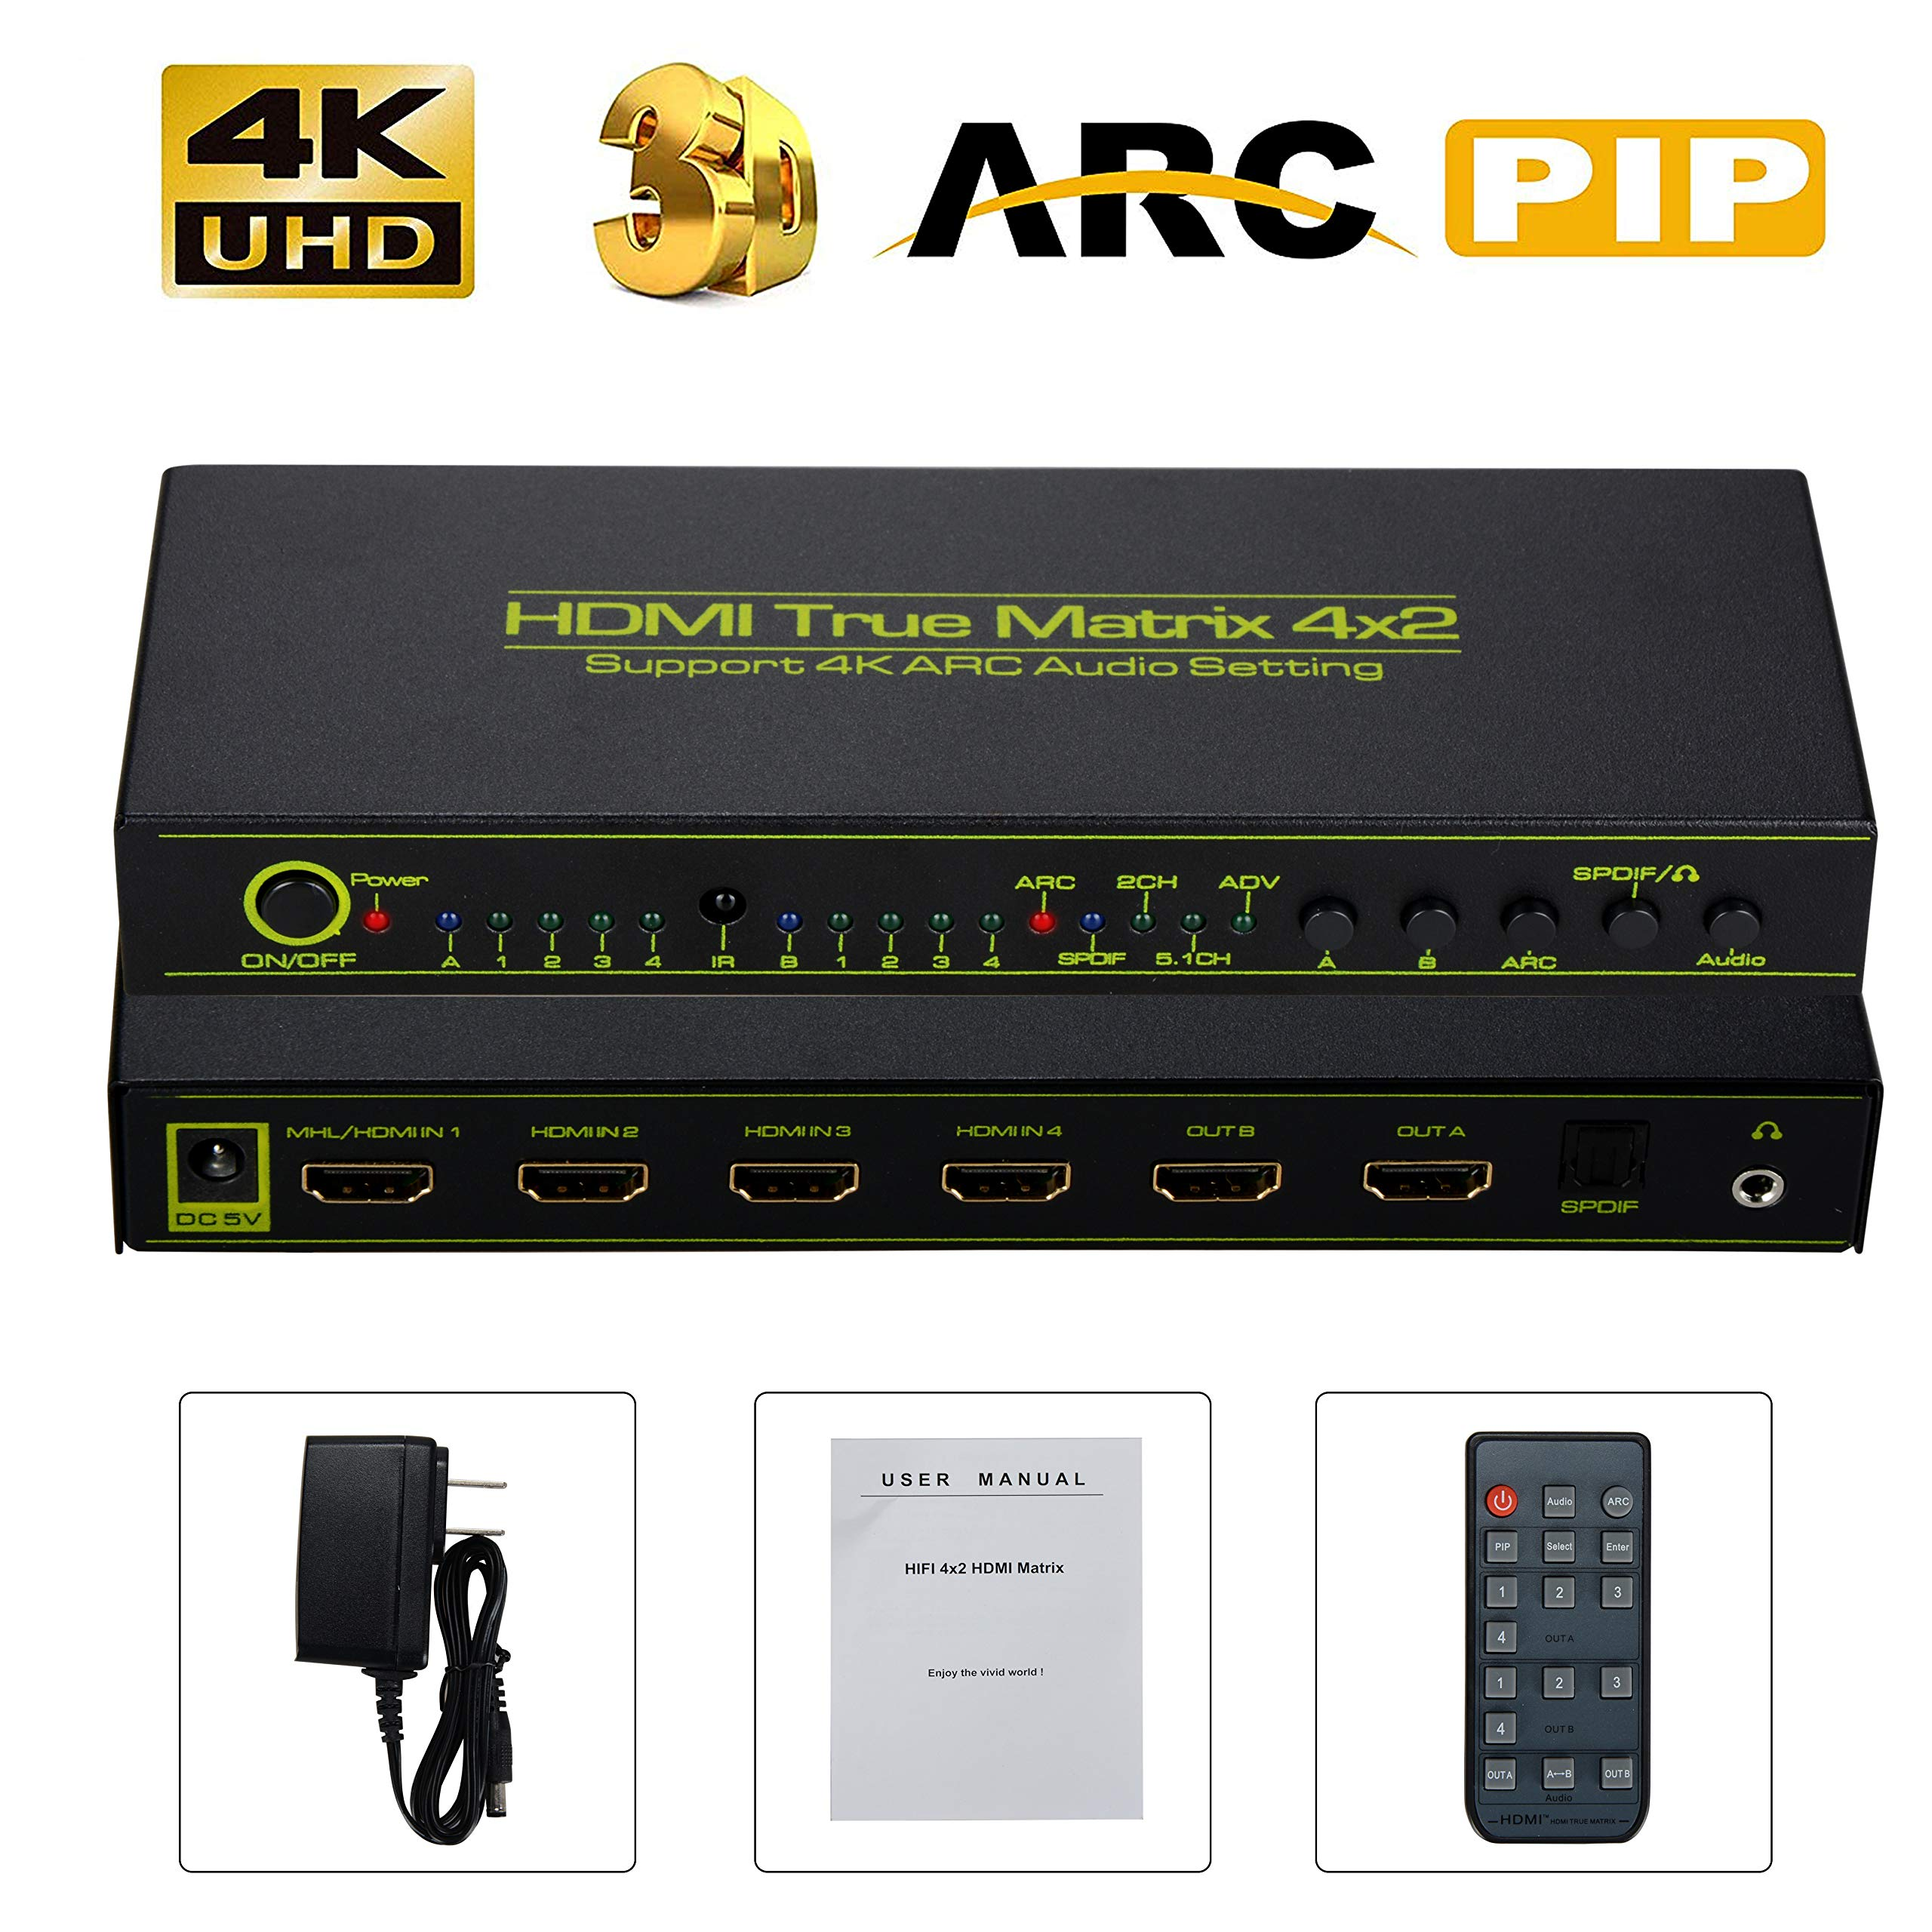 4K HDMI Splitter Switch 4x2 ARC HDMI Splitter Support ARC/PIP/Audio Extractor/EDID, NEWPOWER 4 Input 2 Output HDMI Splitter True Matrix HDMI Splitter Switch